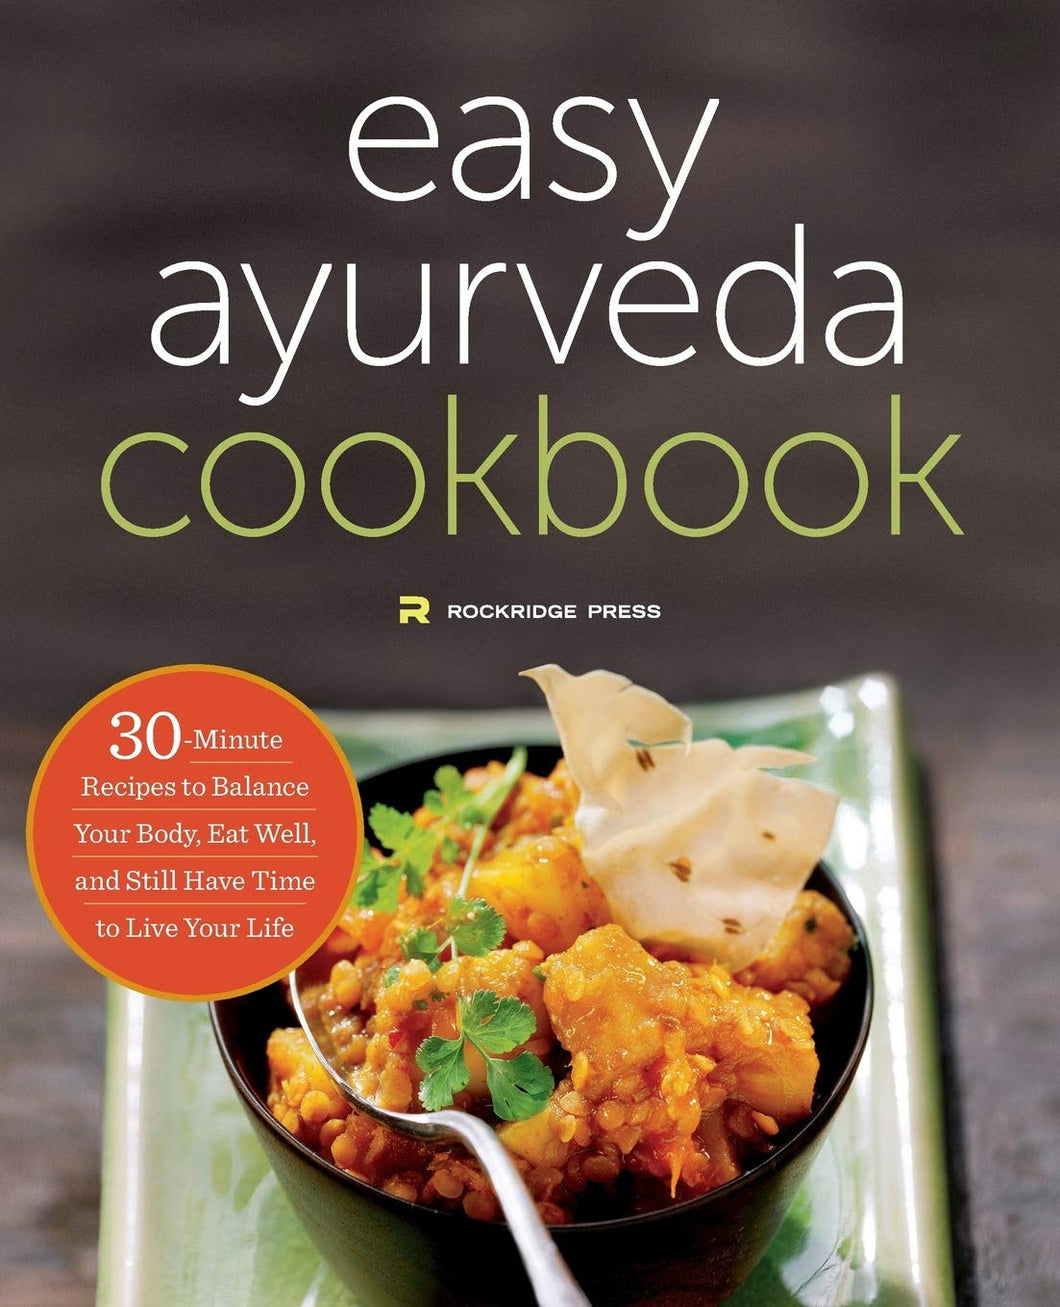 The Easy Ayurveda Cookbook: An Ayurvedic Cookbook to Balance Your Body and Eat Well - Tolerant Planet